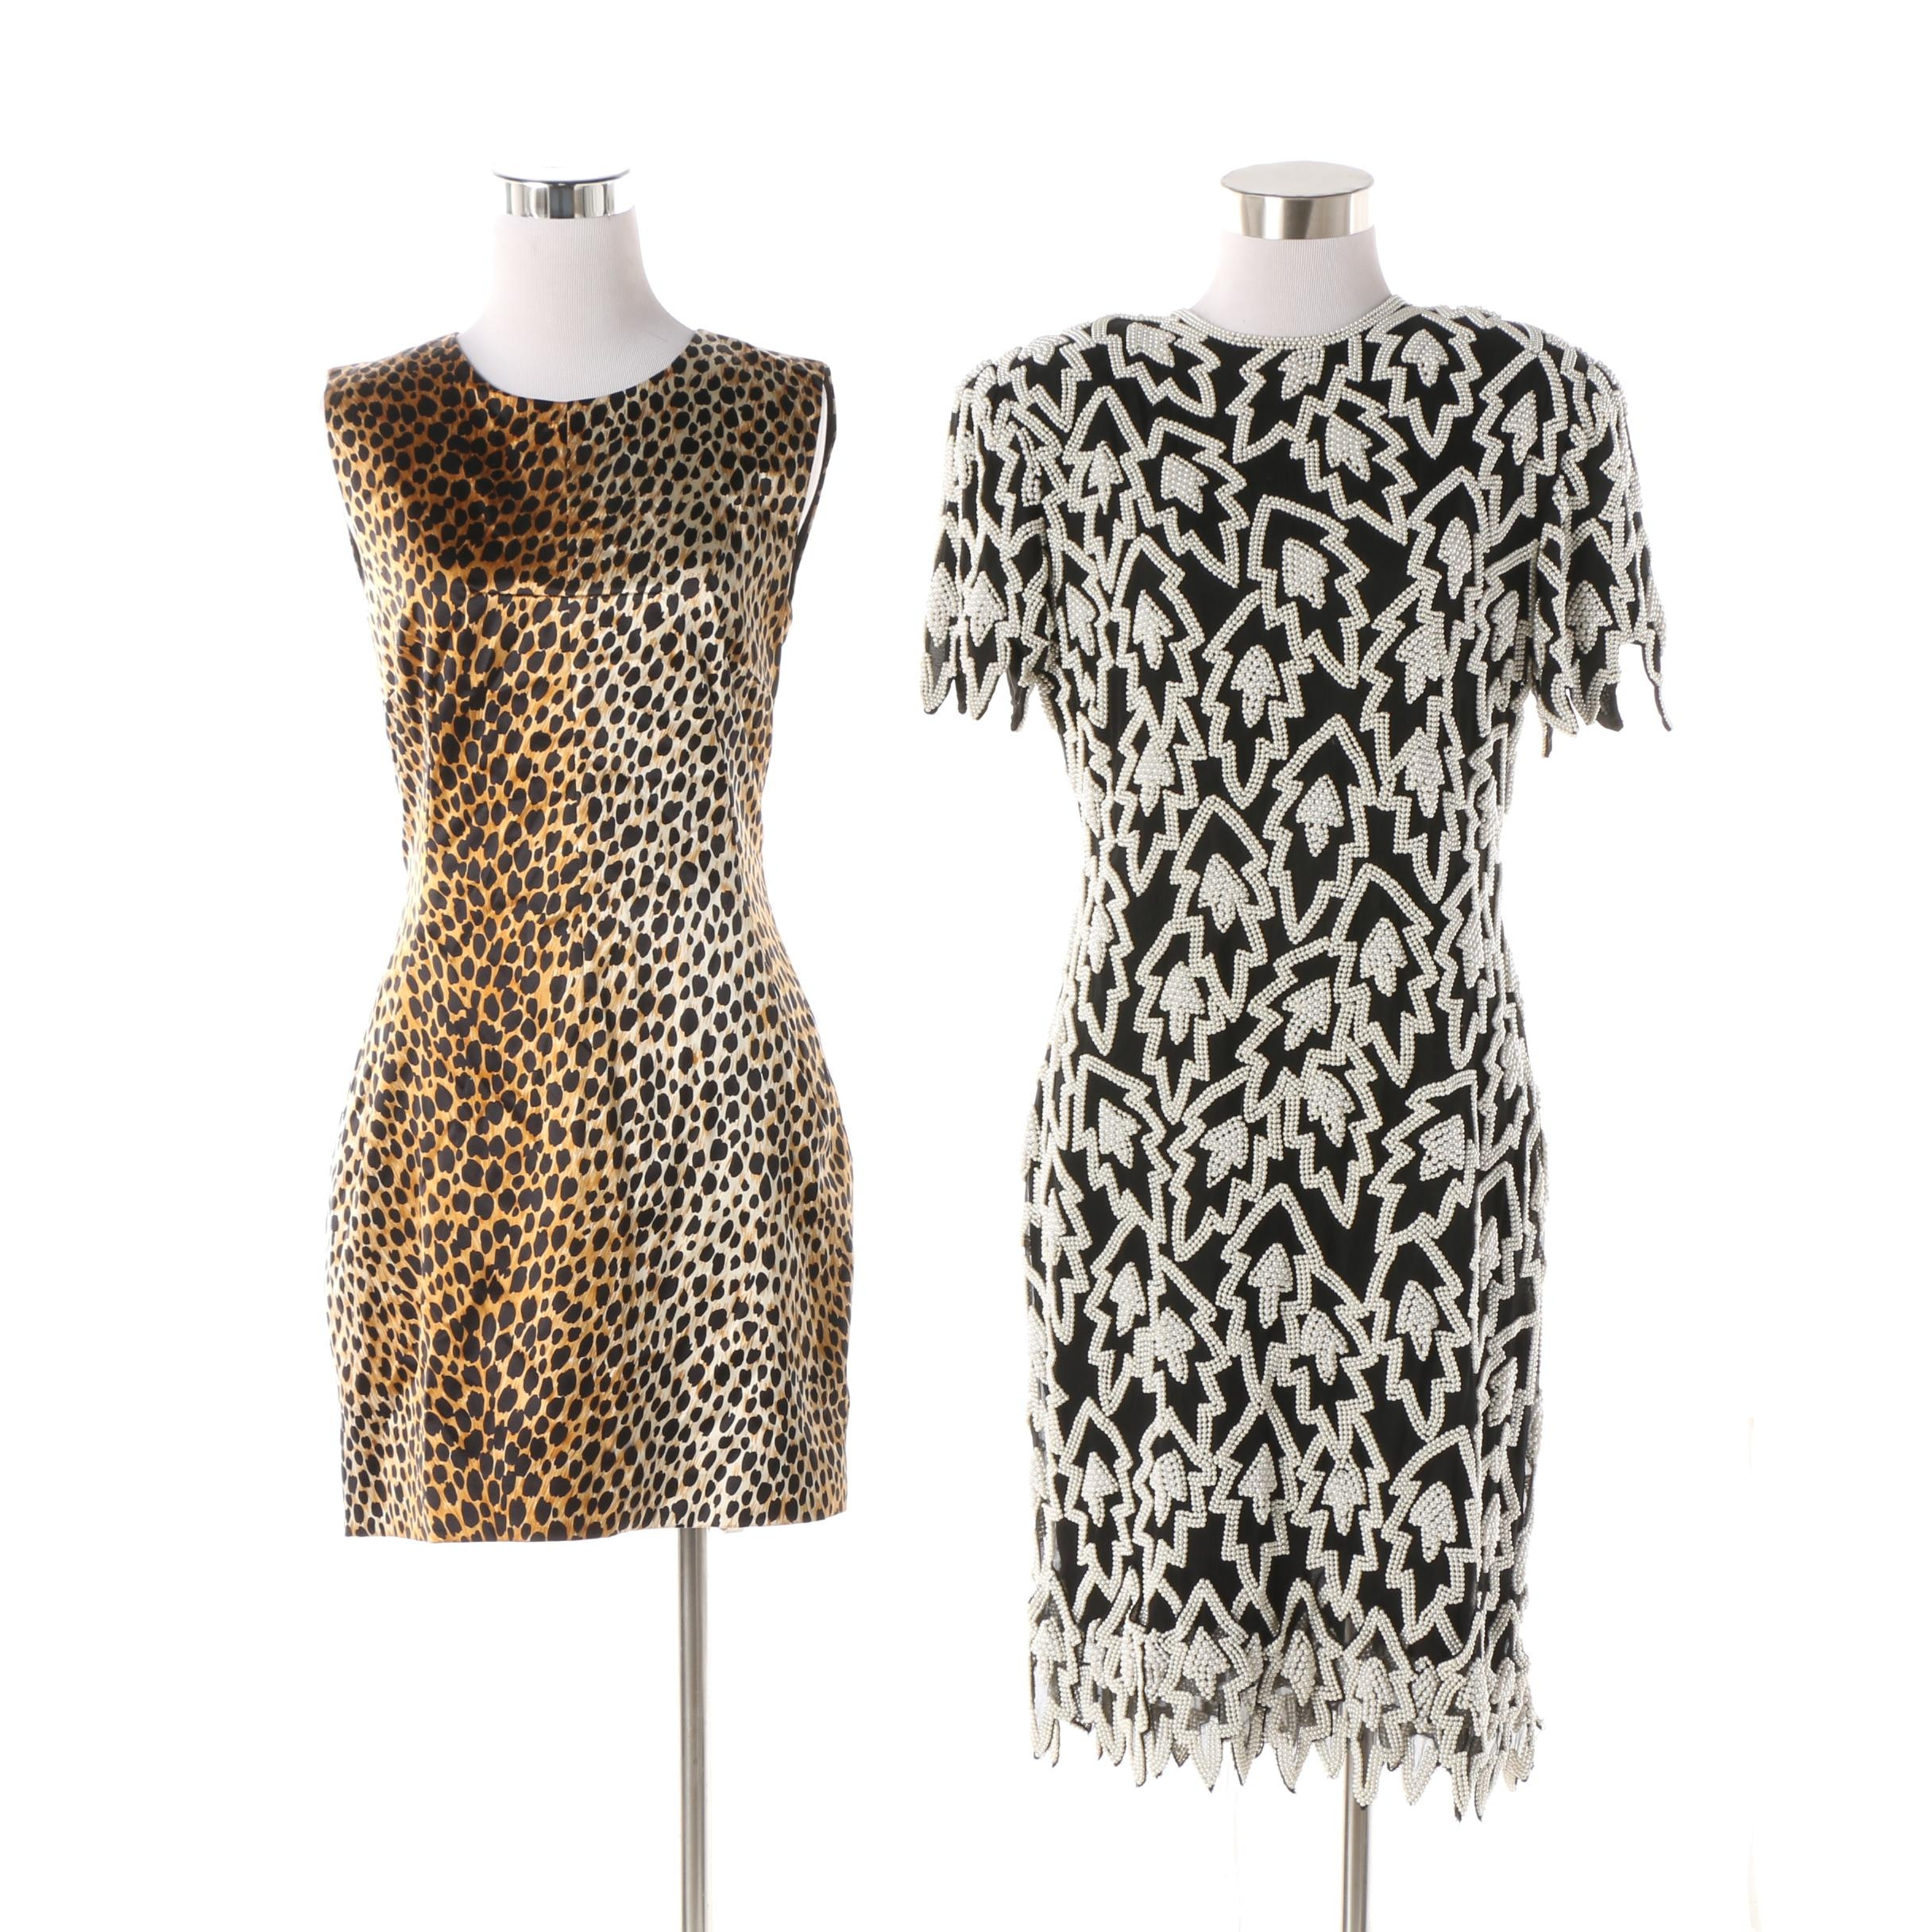 Vintage Dolce & Gabbana and Neiman Marcus Dresses